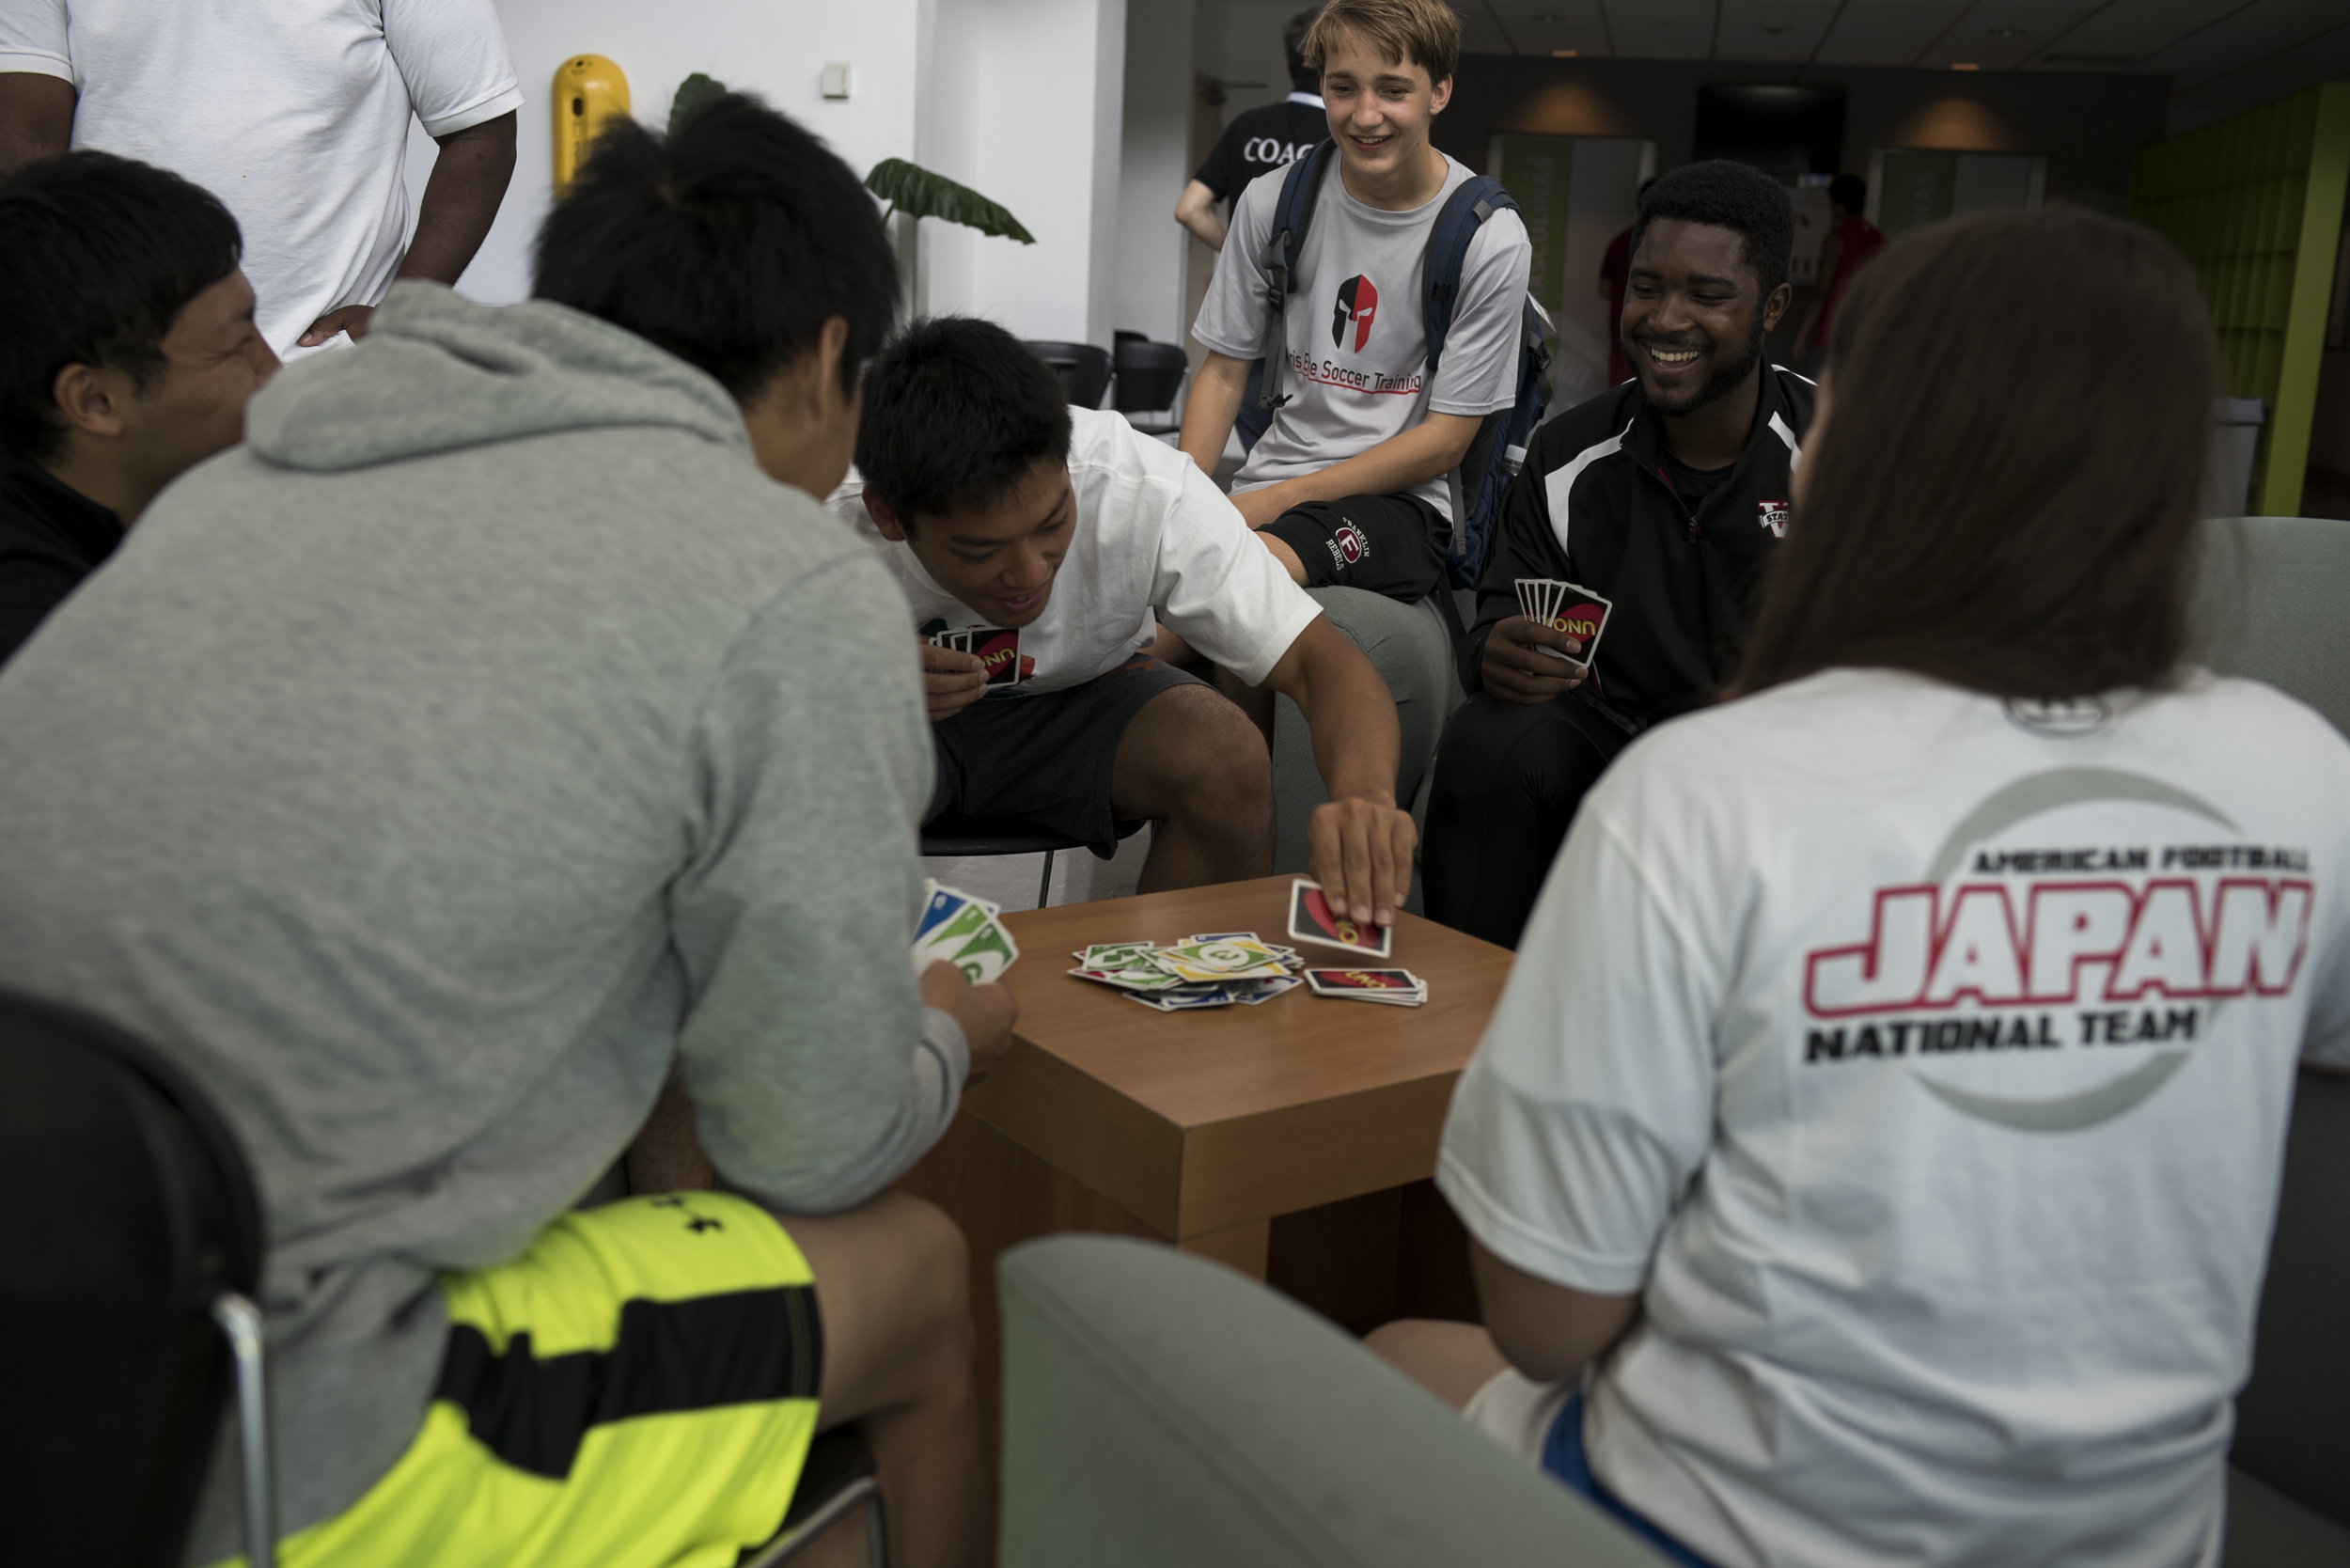 United States quarterback Elgin Hilliard Jr plays Uno with Japanese players in the dorms at the 2016 American Football World University Championship on June 10, 2016 in Monterrey, Mexico. Many of the players talked about the camaraderie and sense of brotherhood on display throughout the tournament and across nationalities.